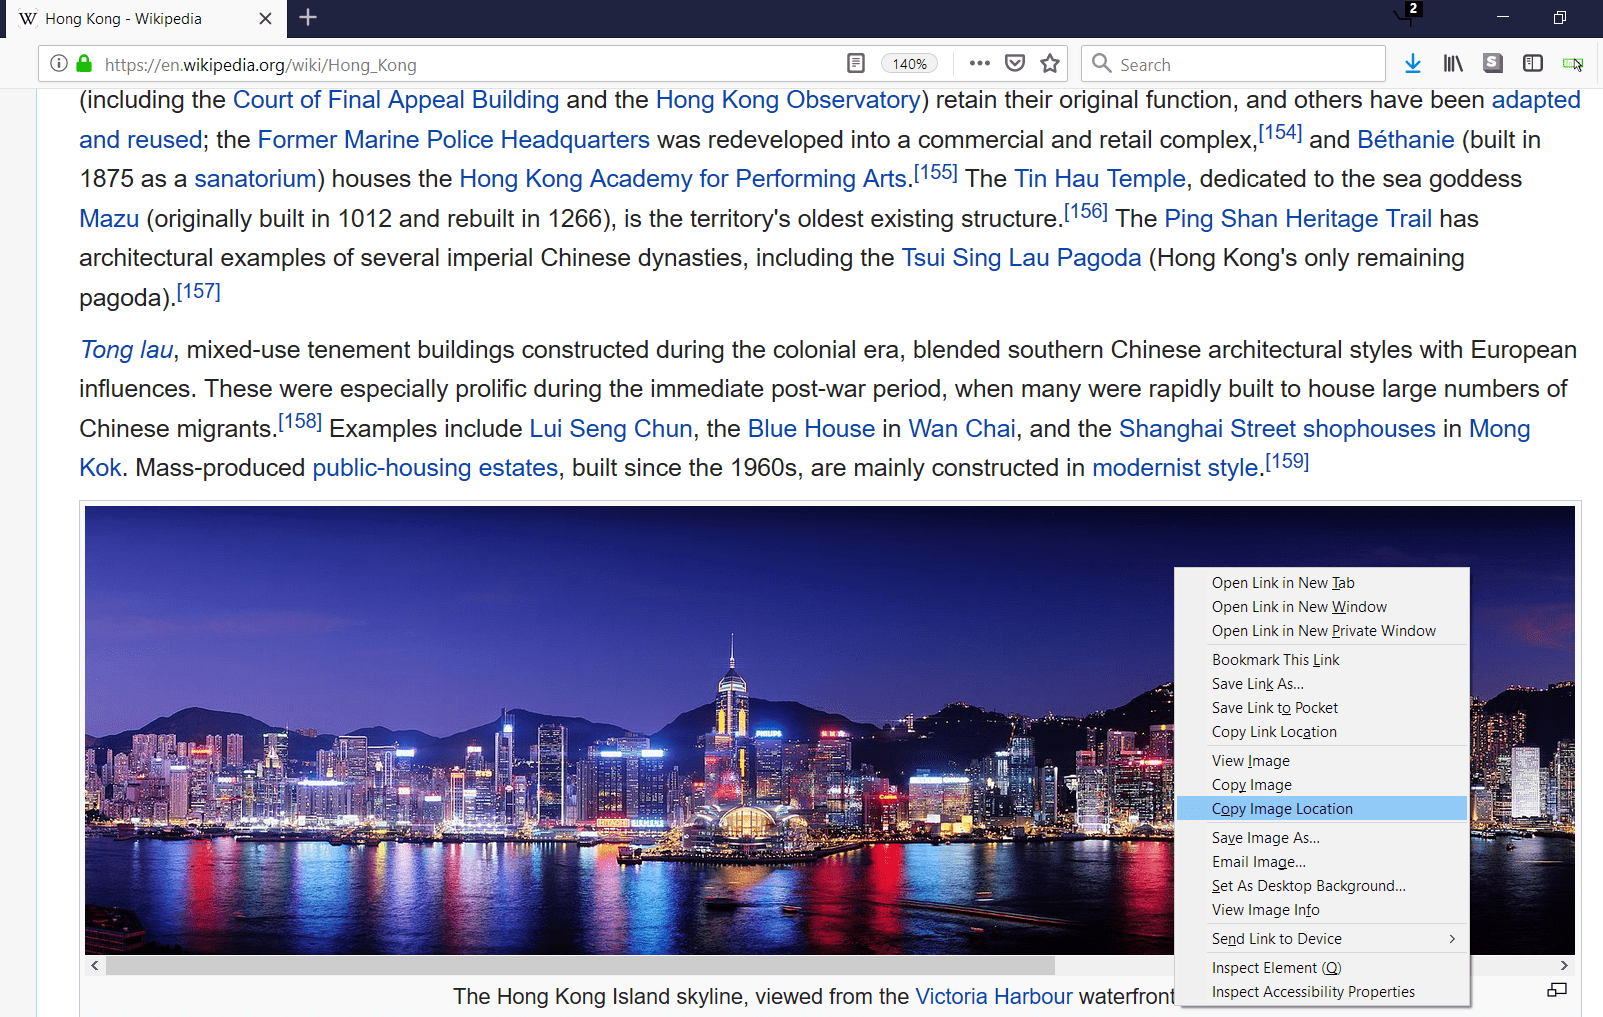 Screenshot of HK Wikipedia Page and the Copy Image Location option of the right-click menu highlighted